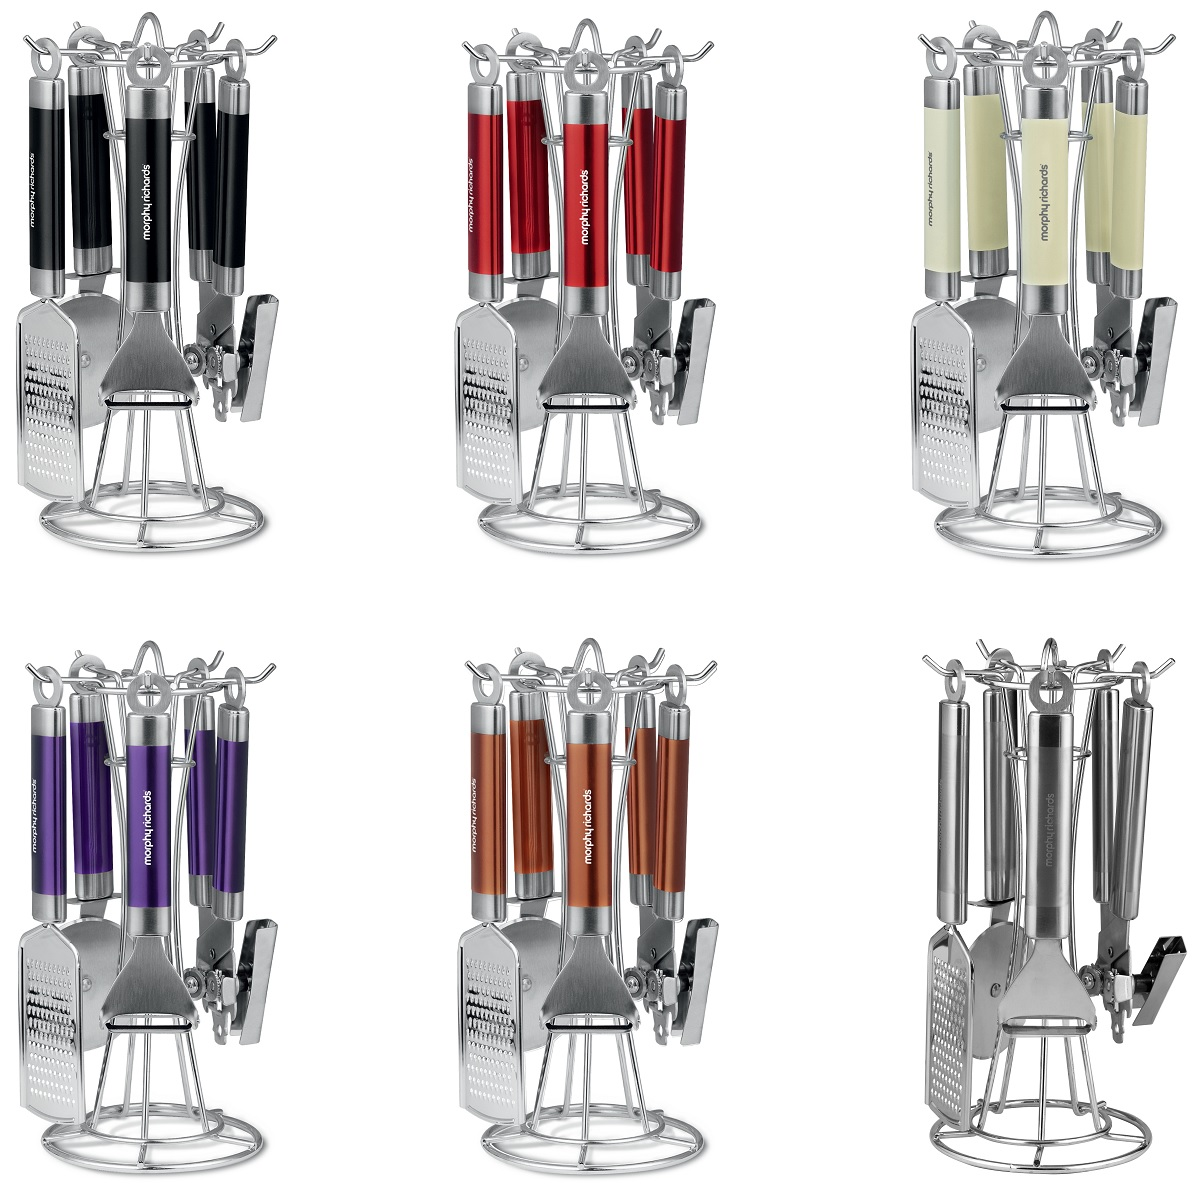 New Morphy Richards Stainless Steel Kitchen Utensils Cooking Stand Gadget Set Uk Ebay